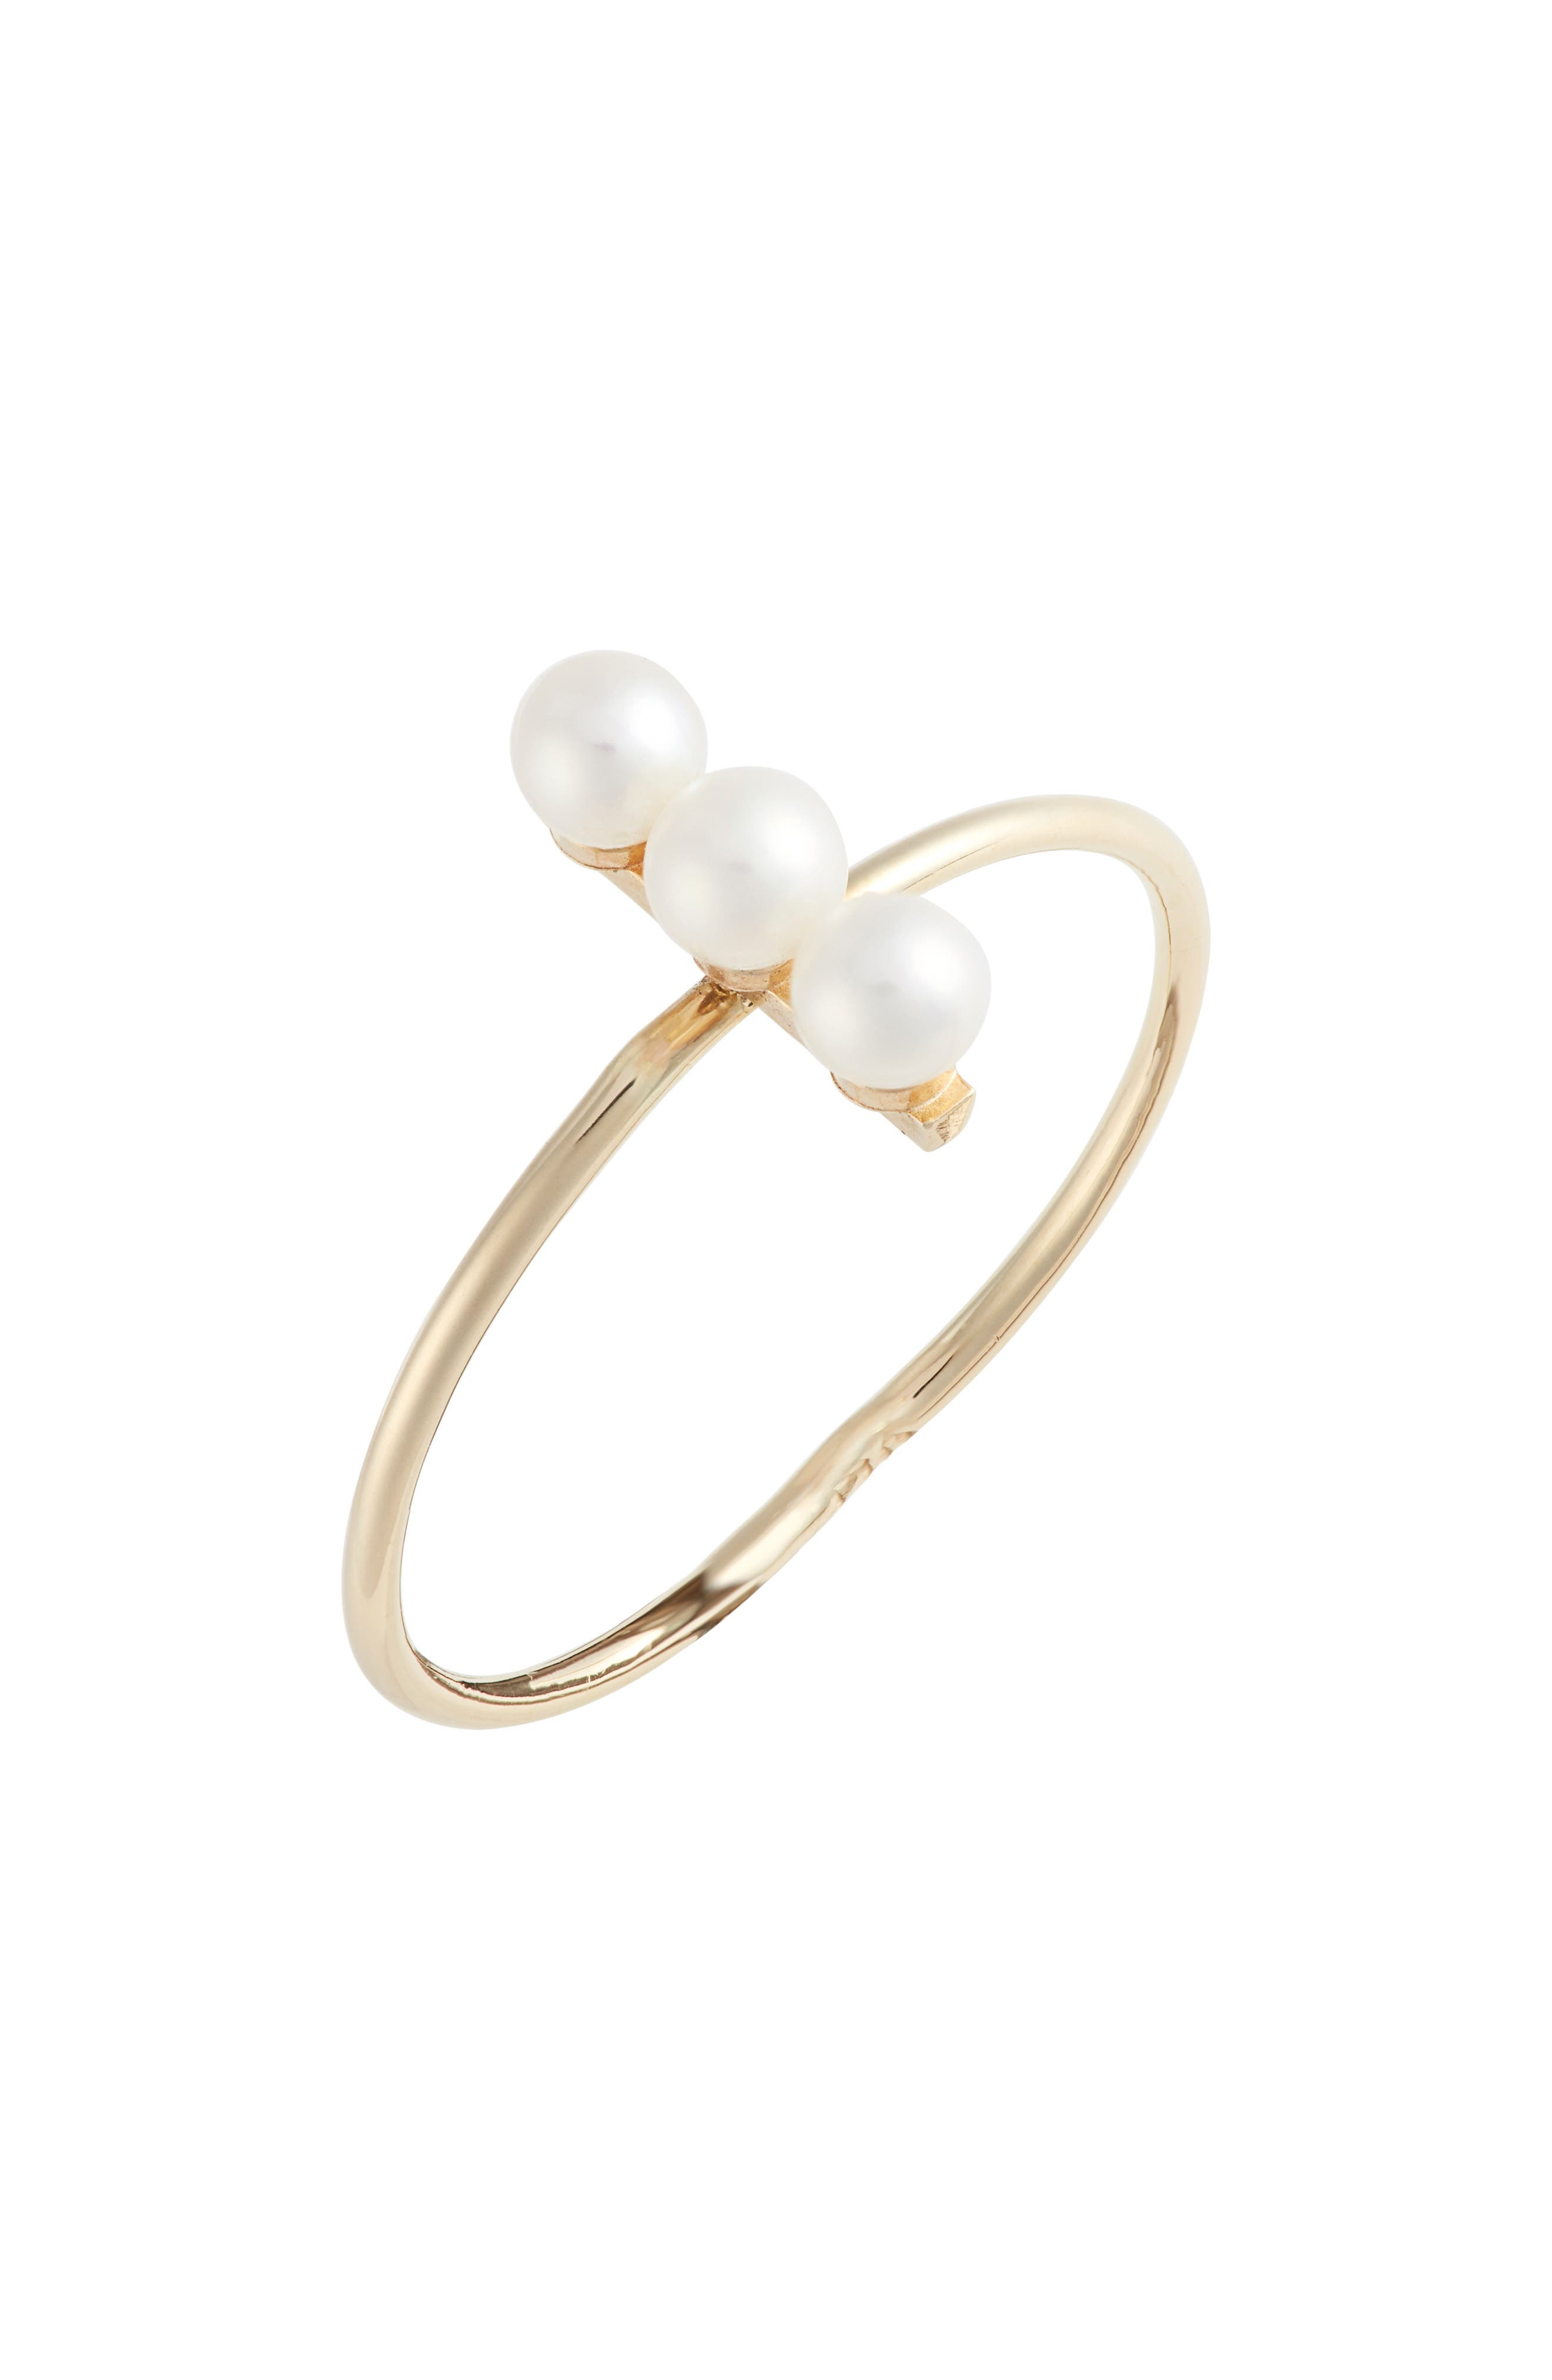 Triple Cultured Pearl Bar Ring,                             Main thumbnail 1, color,                             YELLOW GOLD/ WHITE PEARL